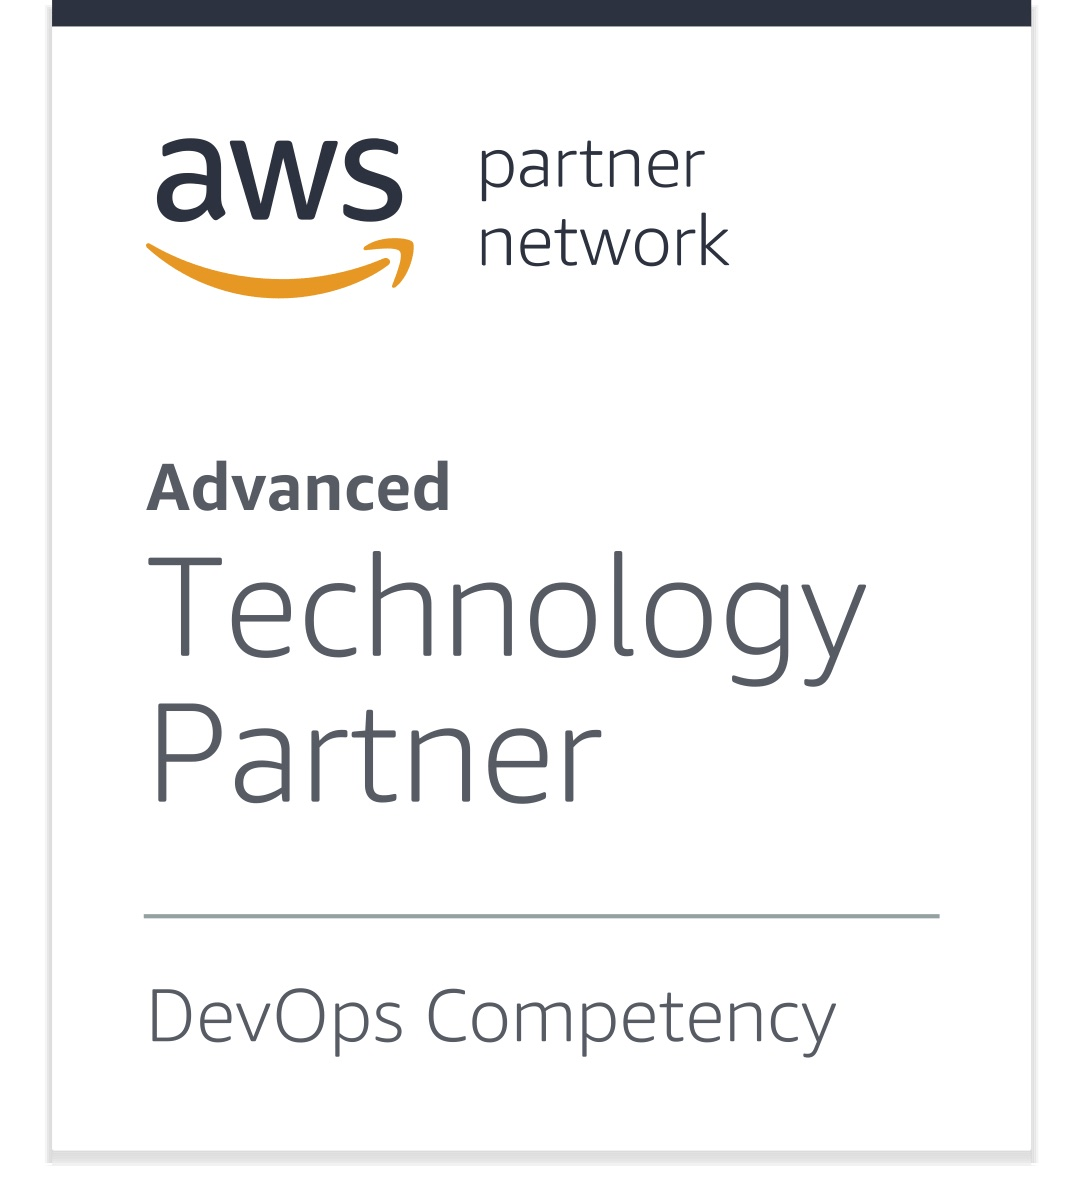 Gitlab Achieves Aws Devops Competency Certification Gitlab